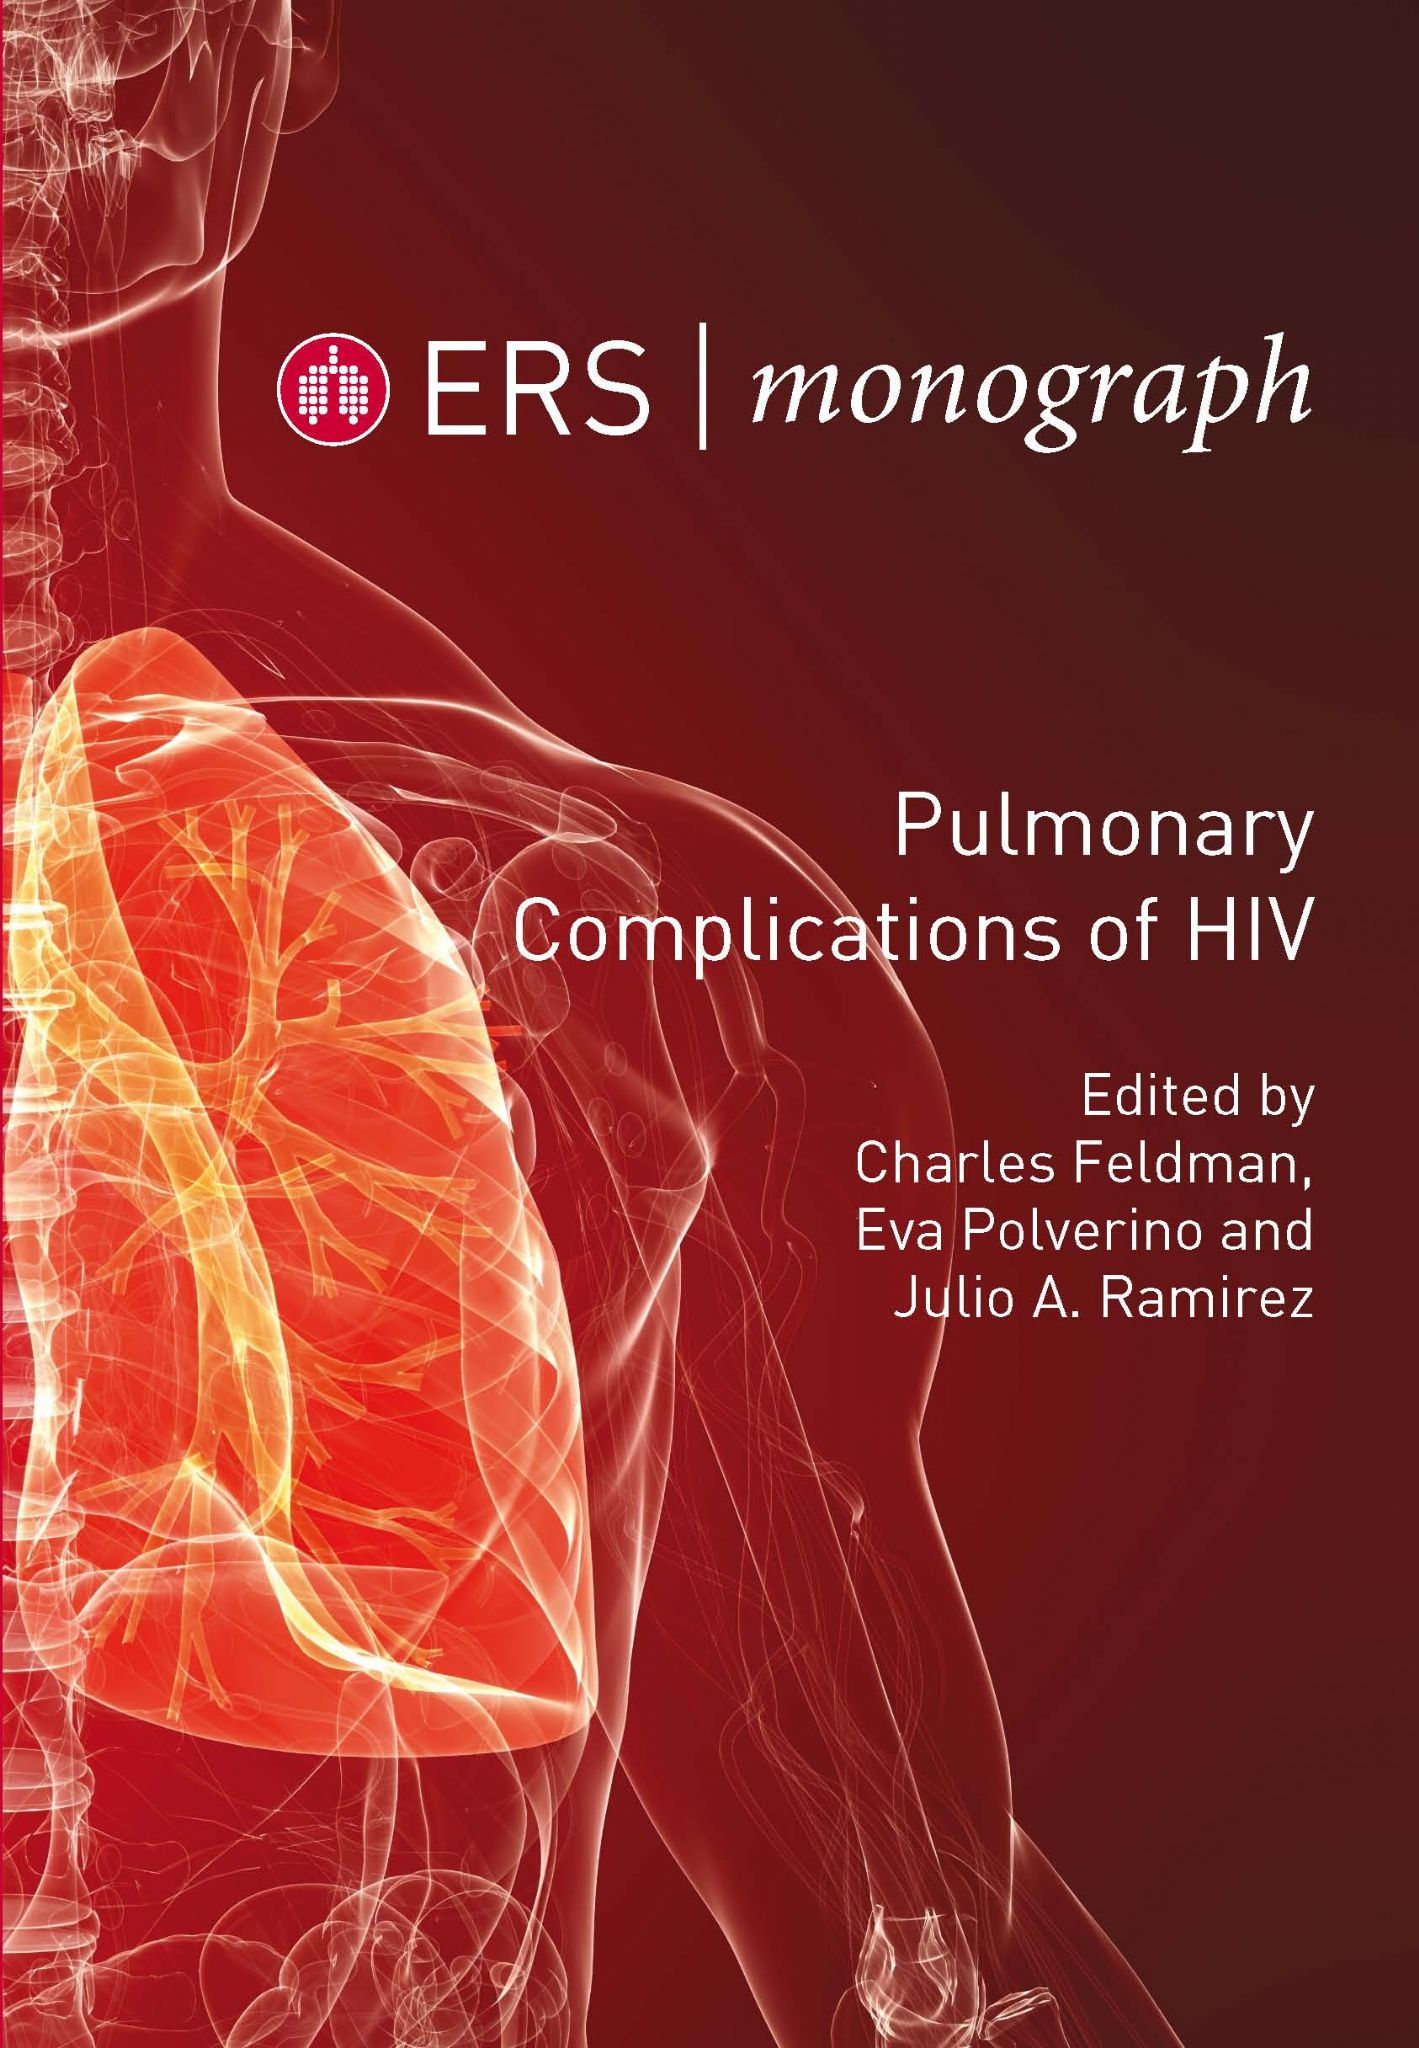 morbidity and mortality of major pulmonary Abstract chronic obstructive pulmonary disease (copd) is a leading and increasing cause of death, the extent of which is underestimated as a consequence of underdiagnosis and underreporting on death certificates.